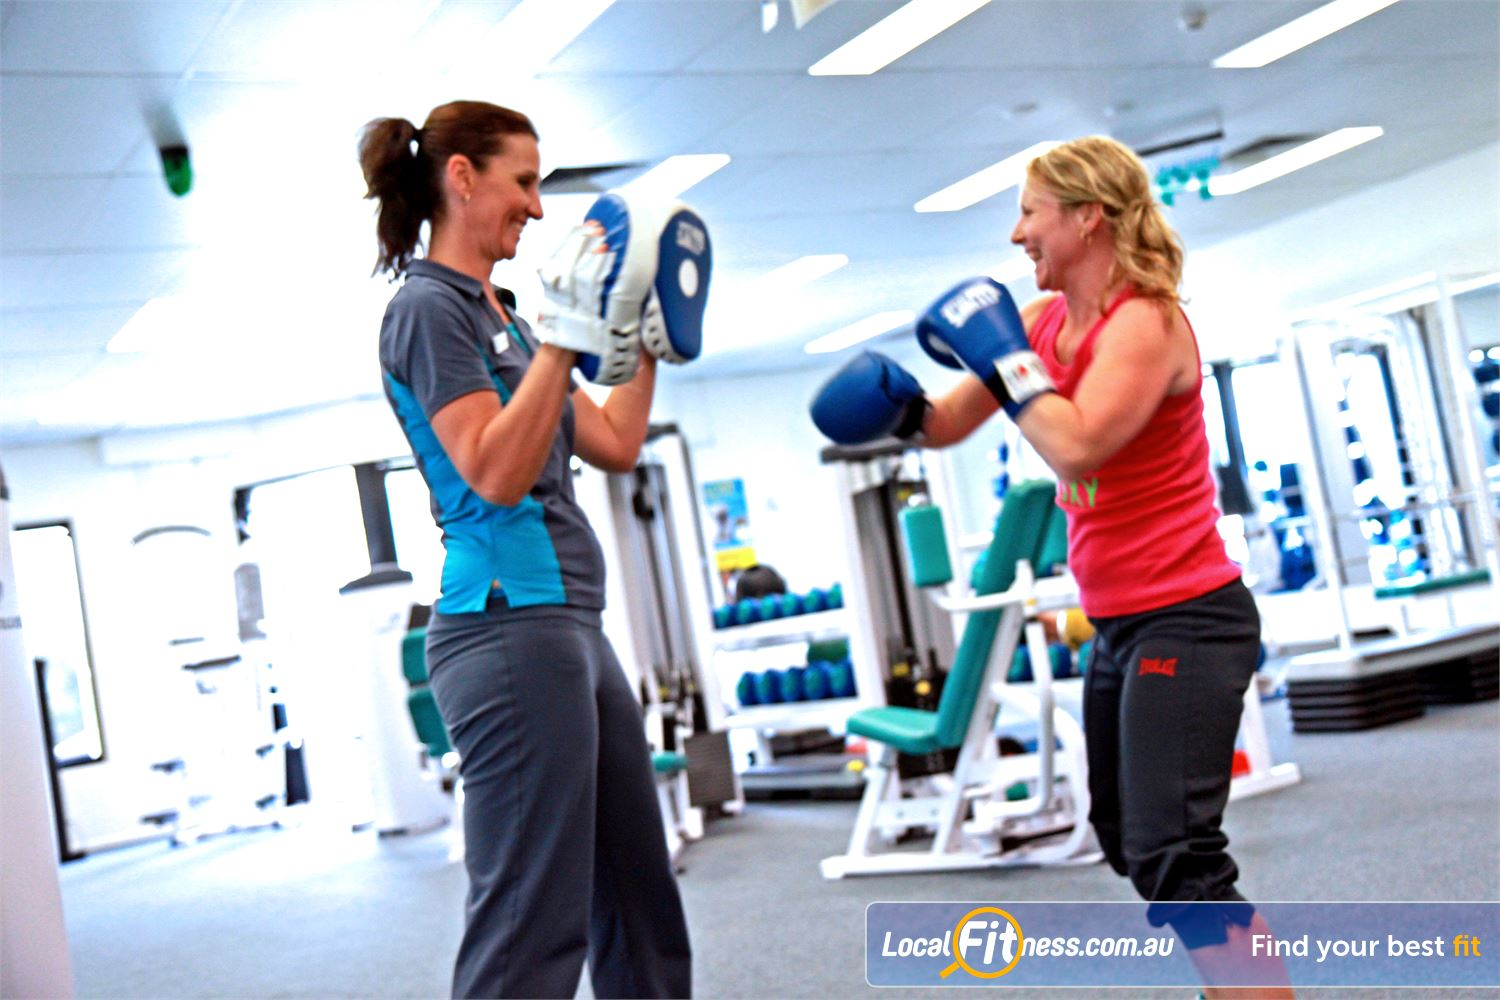 Fernwood Fitness Near Kallangur Lose weight fast with our energetic cardio boxing workouts.